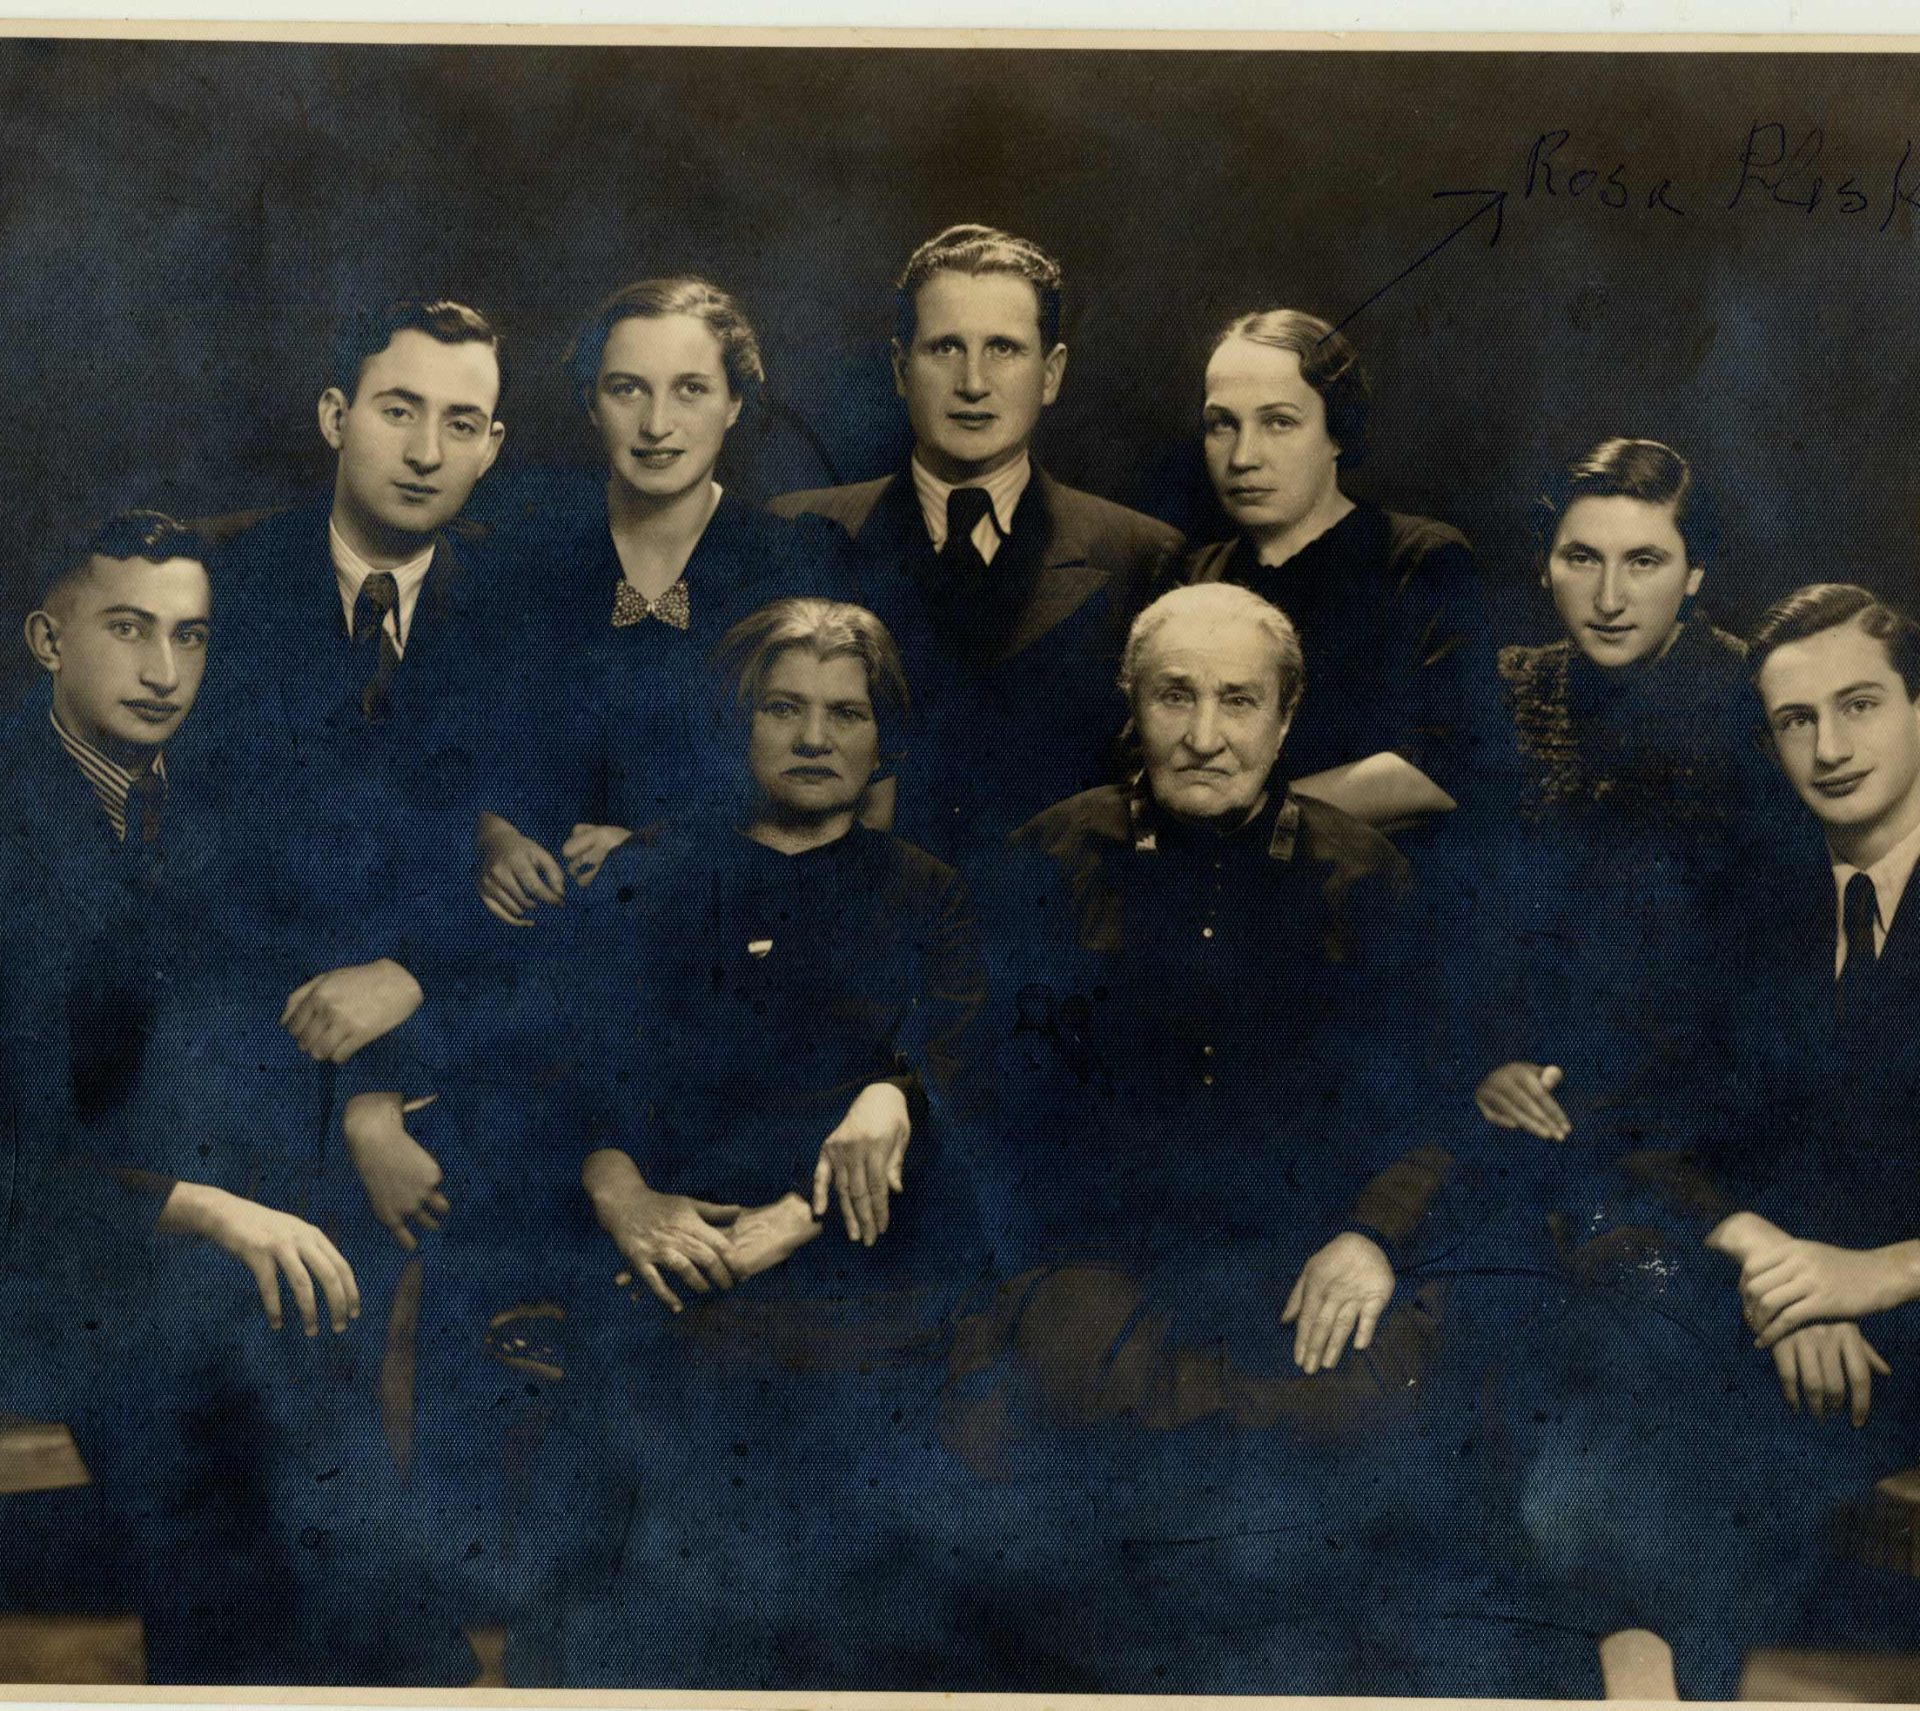 Family portrait taken in 1938. Rosa's husband Mordechai Pliskin is in the middle, with Rosa on his left.